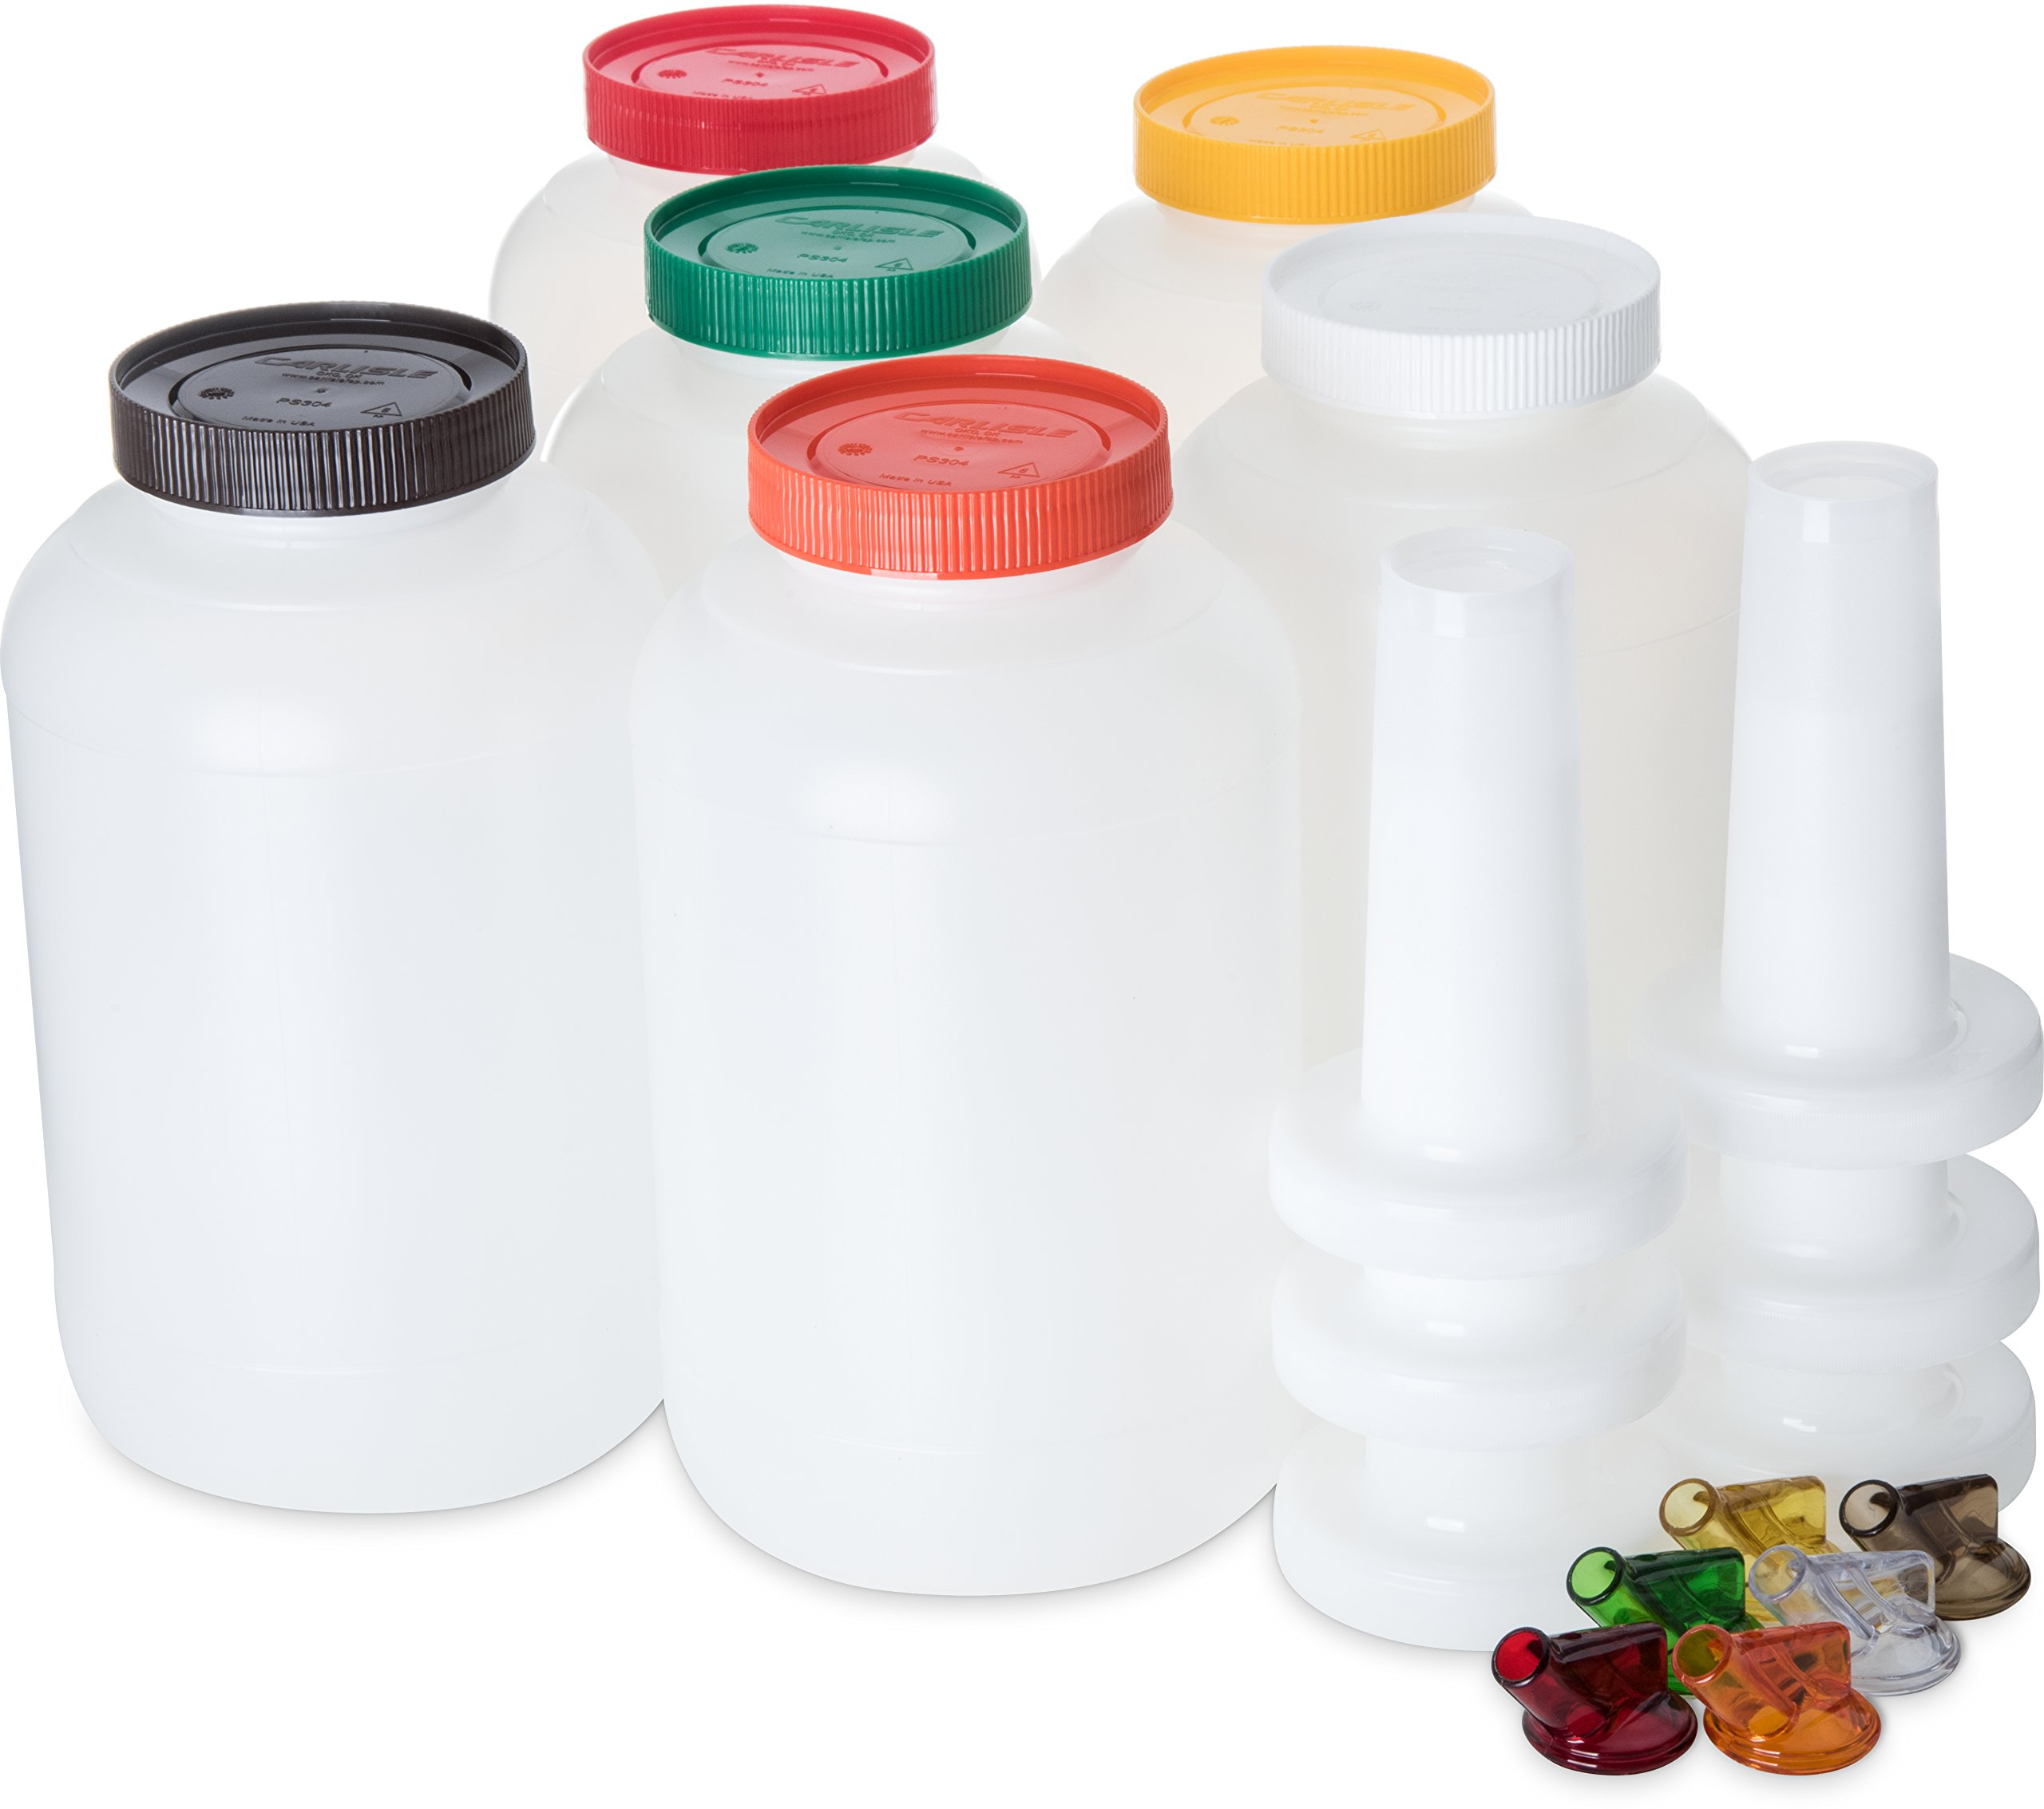 Carlisle PS801B00 Store N' Pour Complete Unit Assorted Colors, 1 Gallon Capacity, Assorted (Pack of 6) by Carlisle